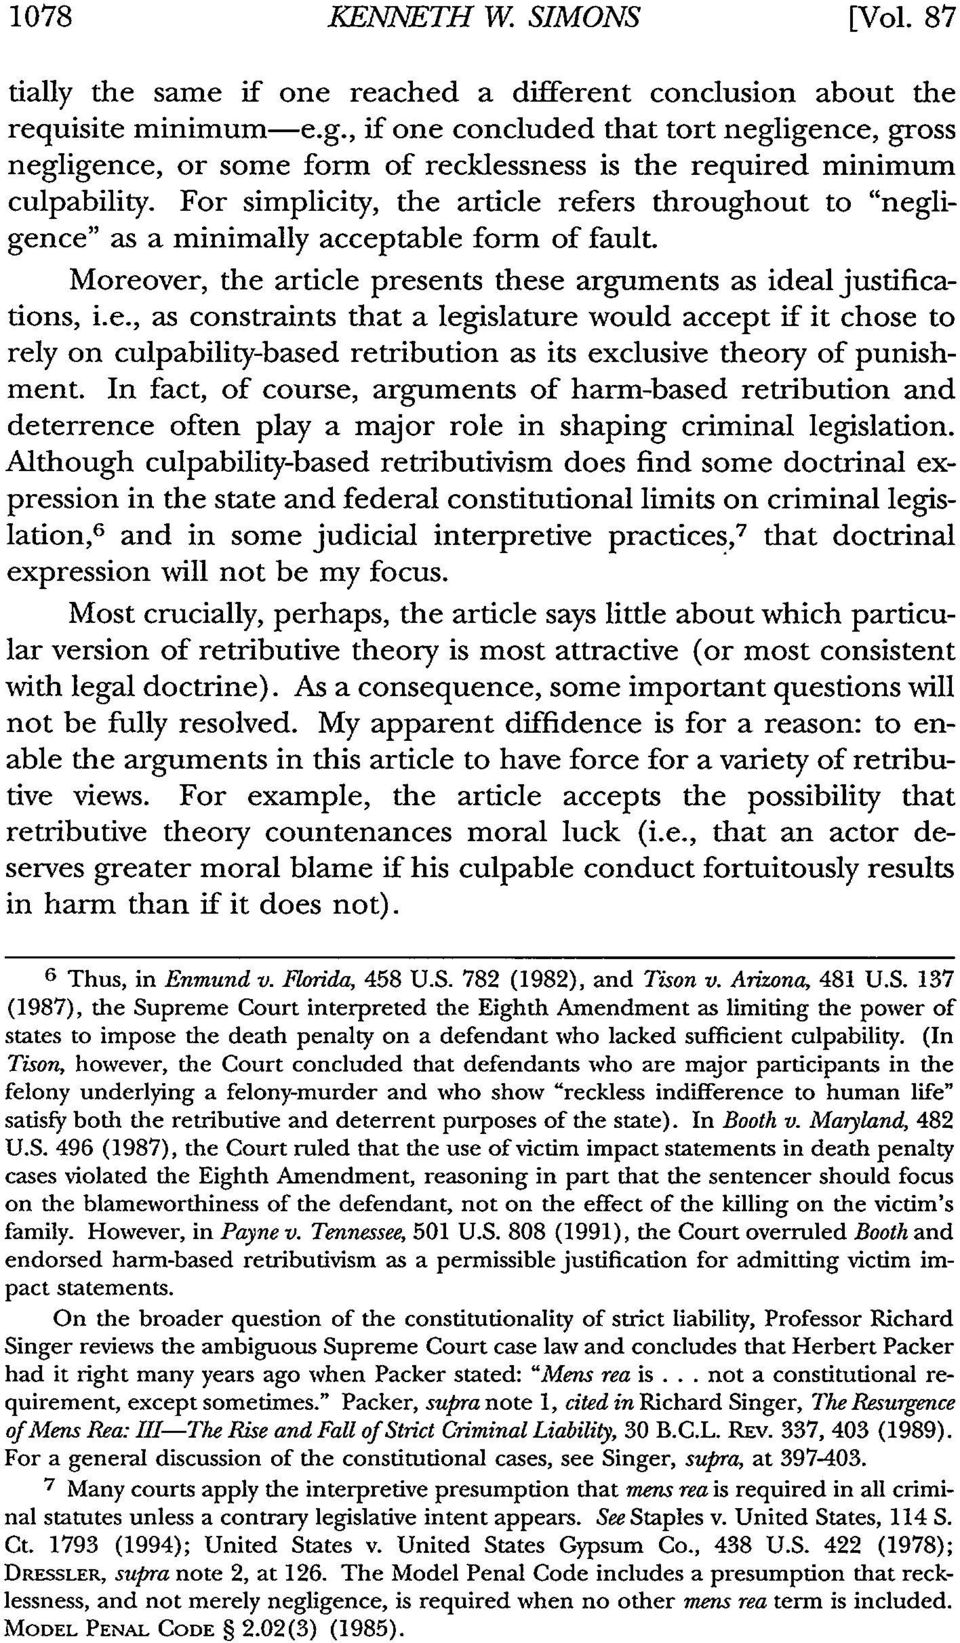 "For simplicity, the article refers throughout to ""negligence"" as a minimally acceptable form of fault. Moreover, the article presents these arguments as ideal justifications, i.e., as constraints that a legislature would accept if it chose to rely on culpability-based retribution as its exclusive theory of punishment."